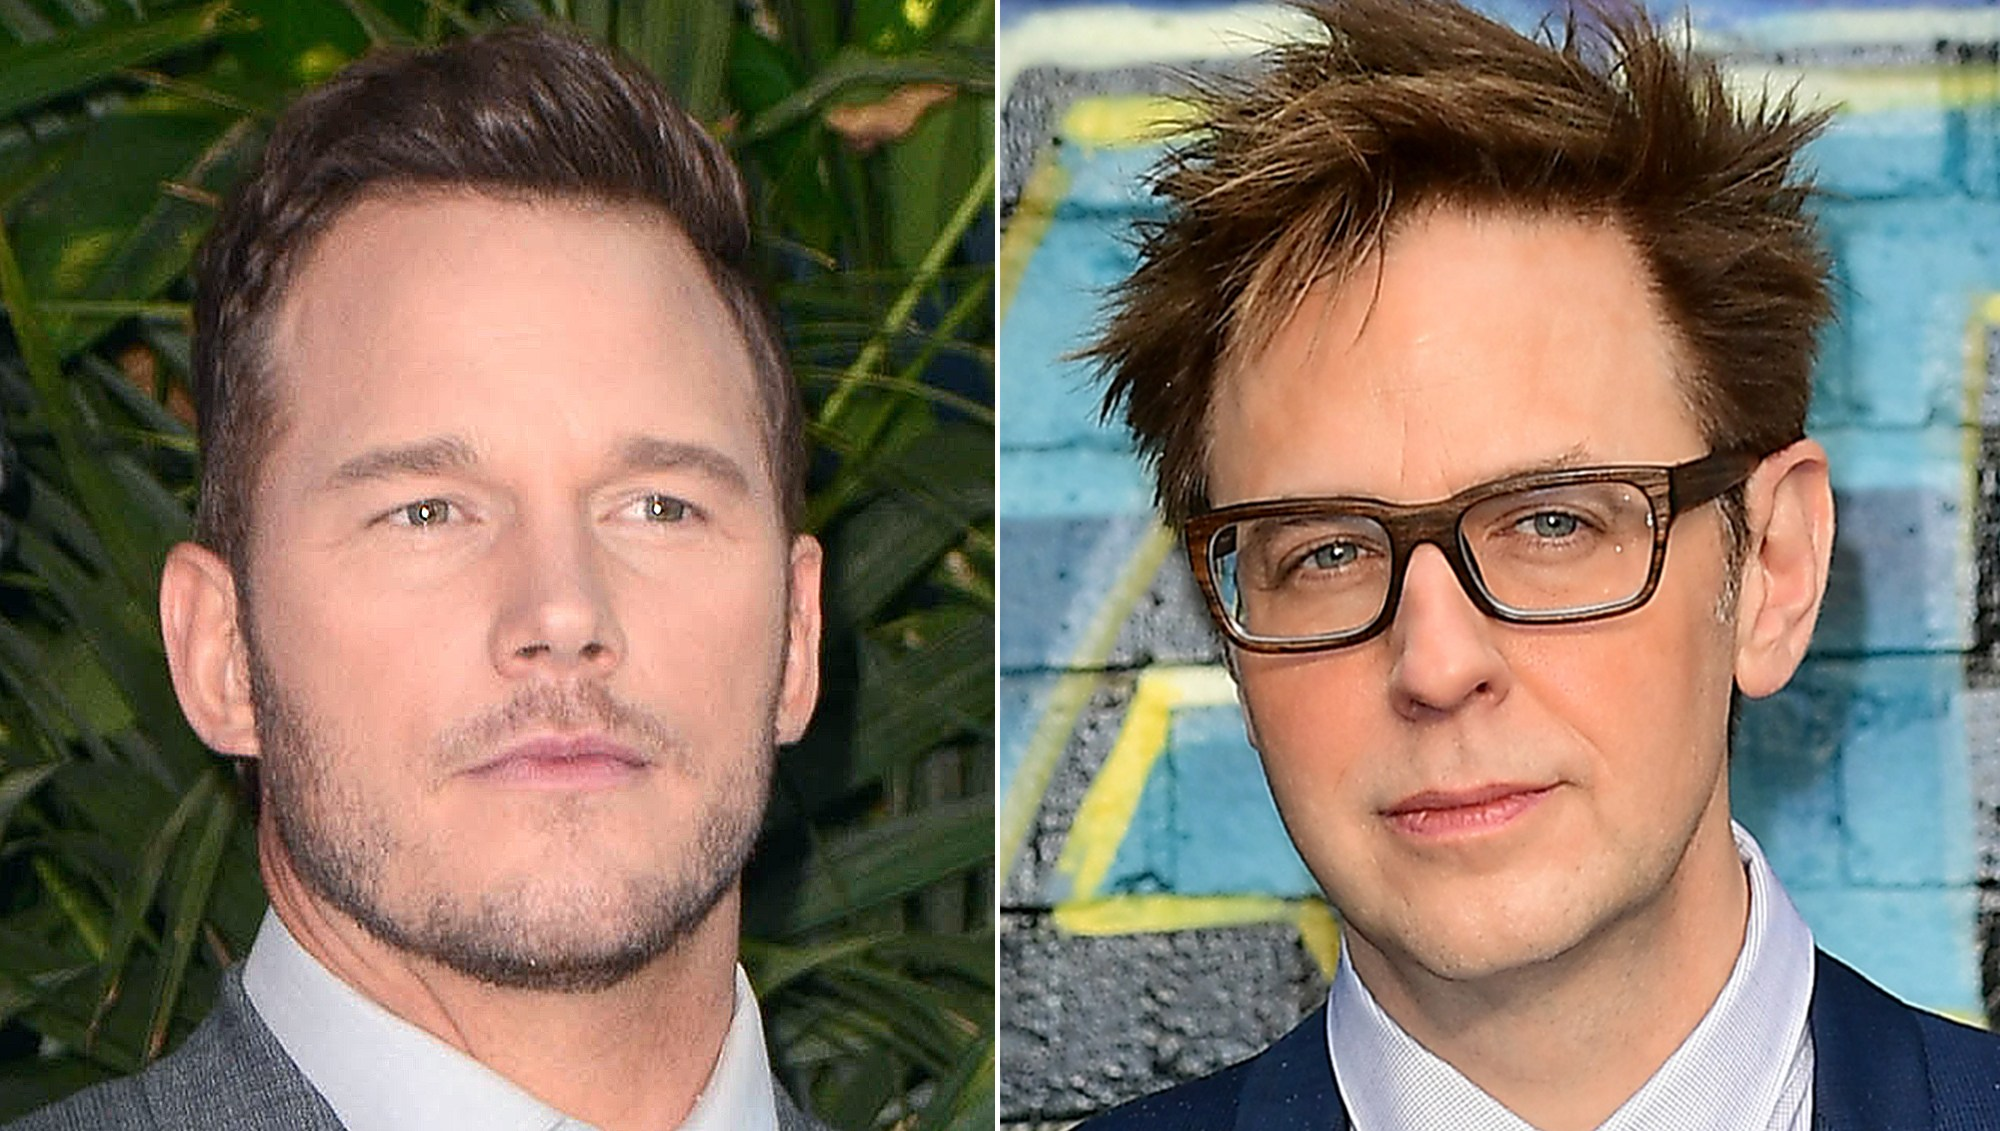 Chris Pratt Says 'Good Friend' James Gunn's Firing Is 'Not an Easy Time'